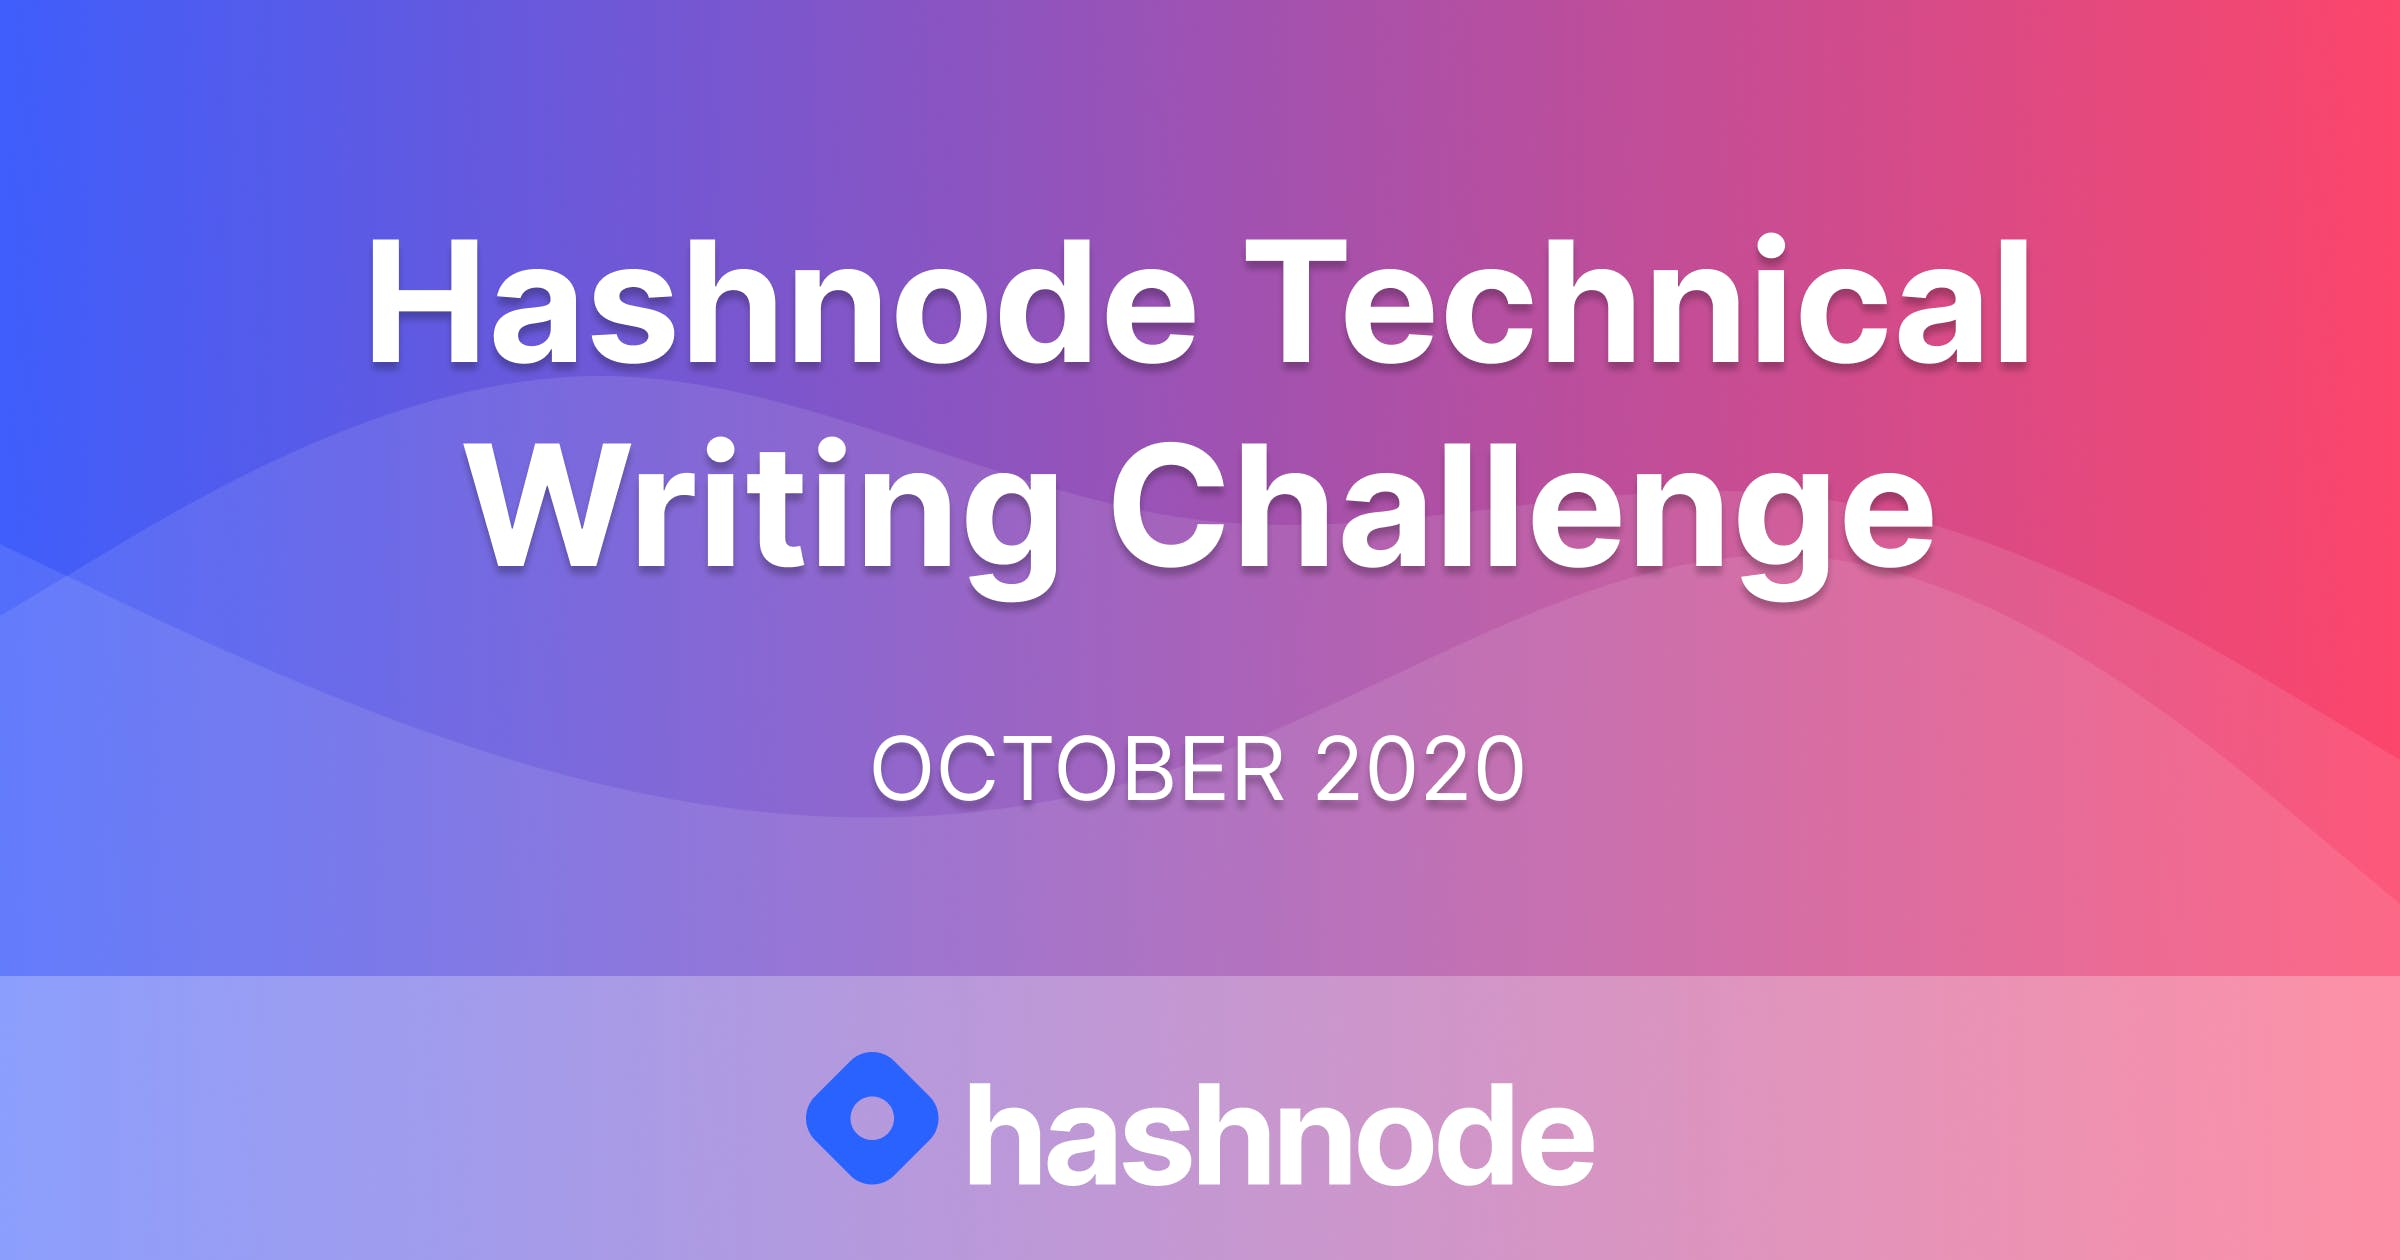 Hashnode Technical Writing Challenge